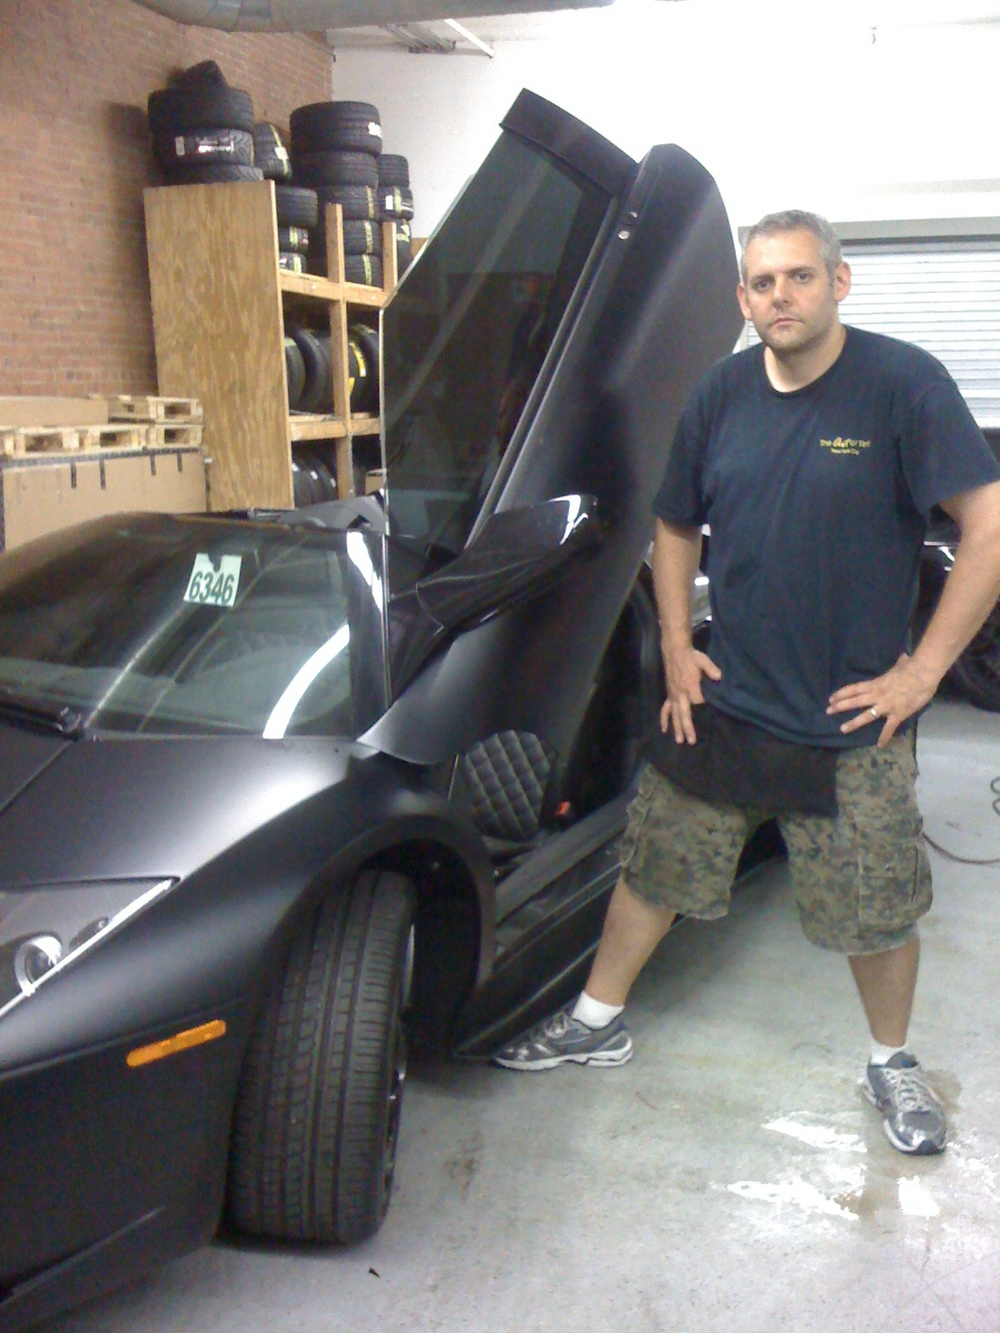 Matt Black Lamborghini Murcielago.  This one of a kind Lambo was incredible!